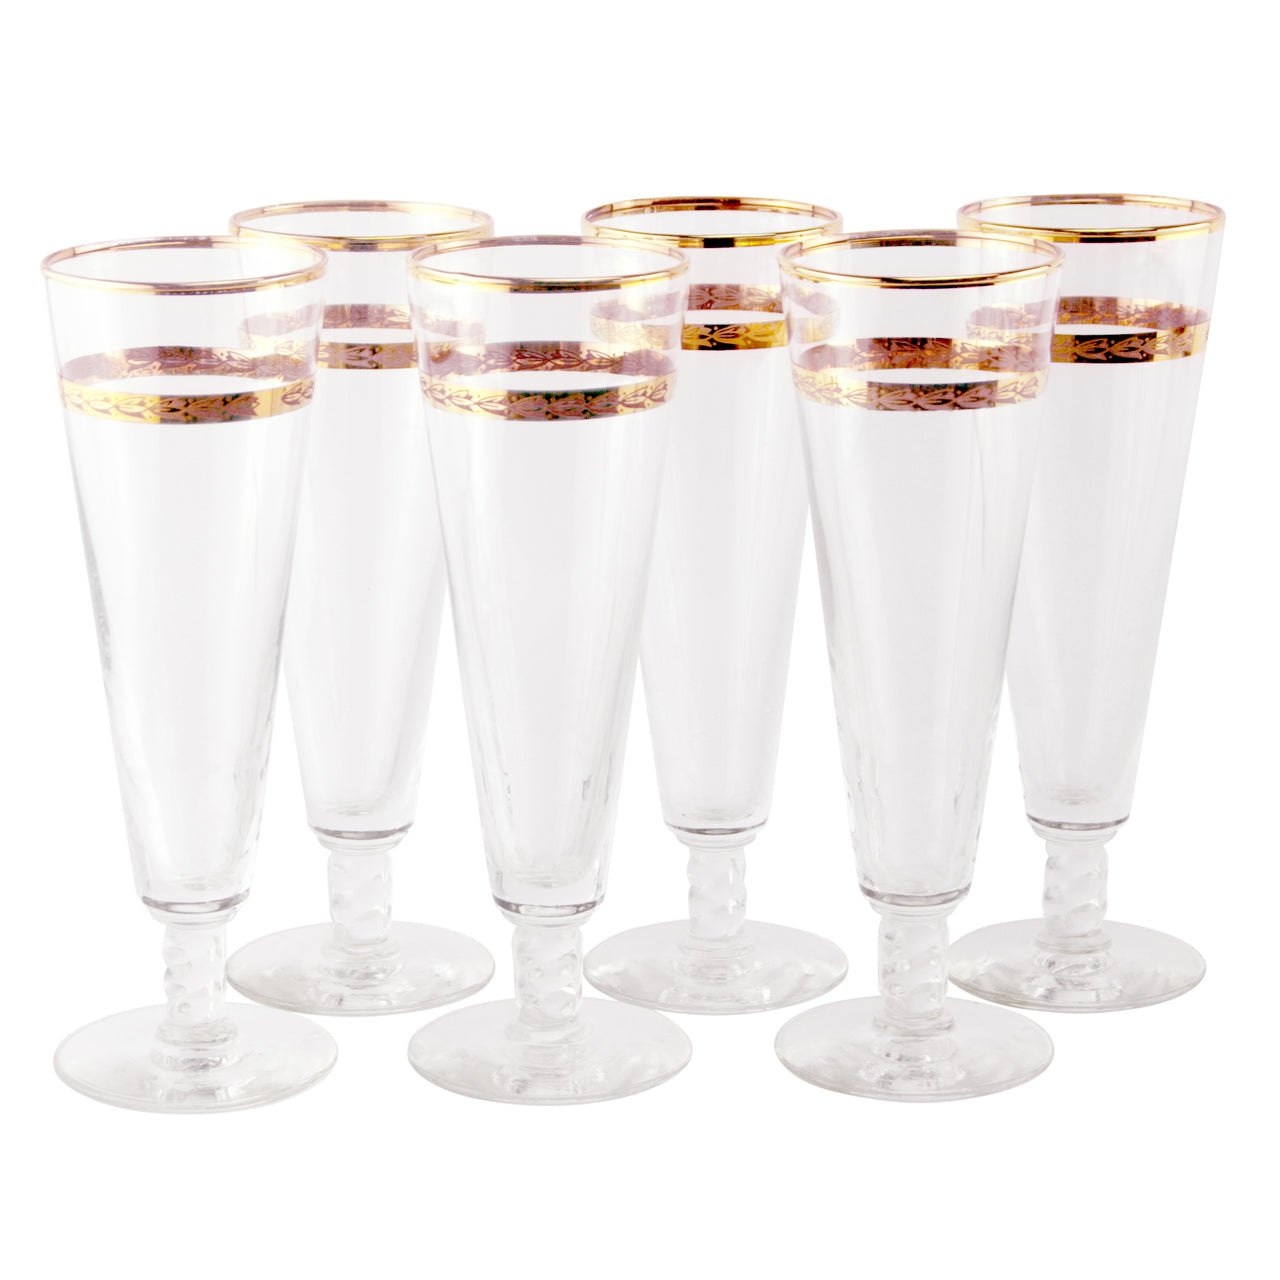 Libbey Gold Band Pilsner Glasses